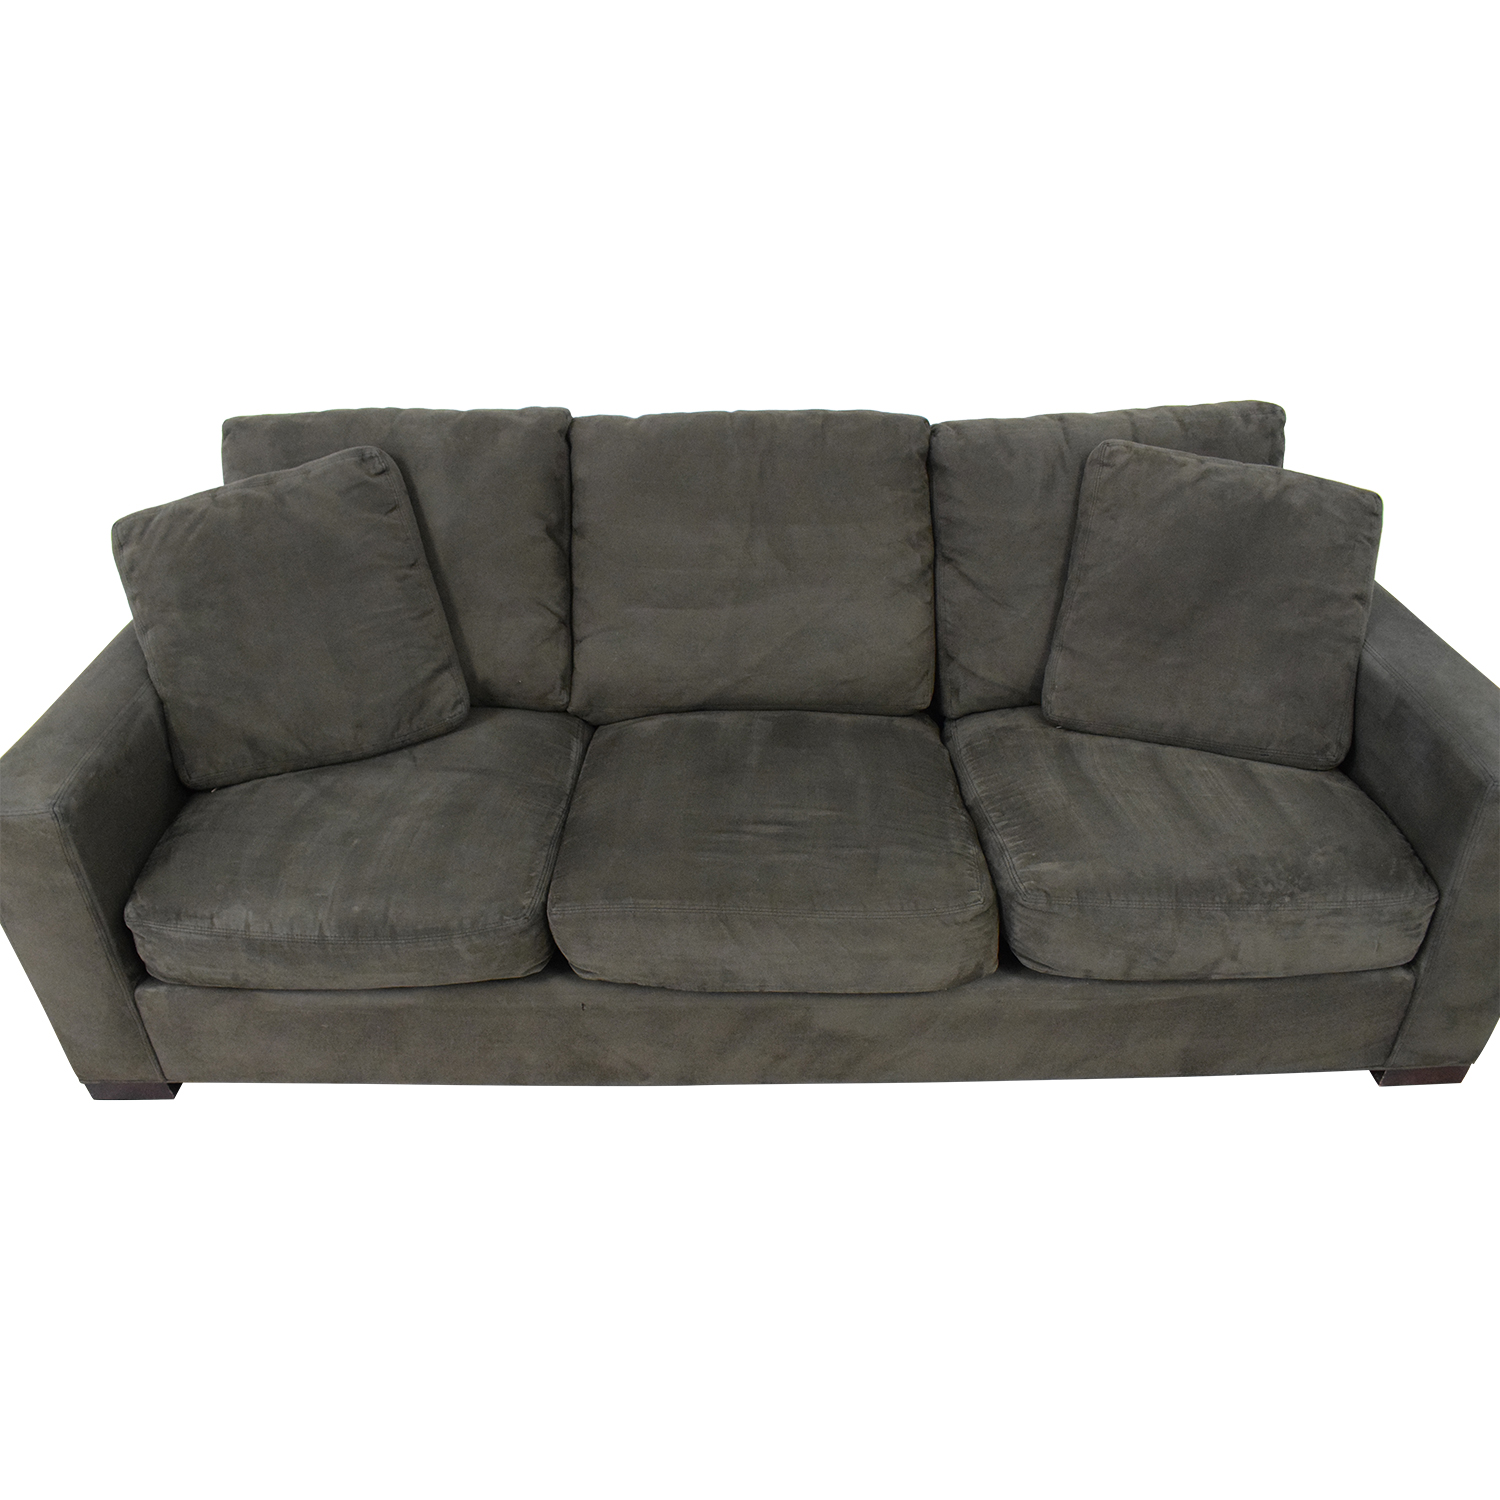 Room & Board Room & Board Dark Grey Micro Suede Sofa on sale